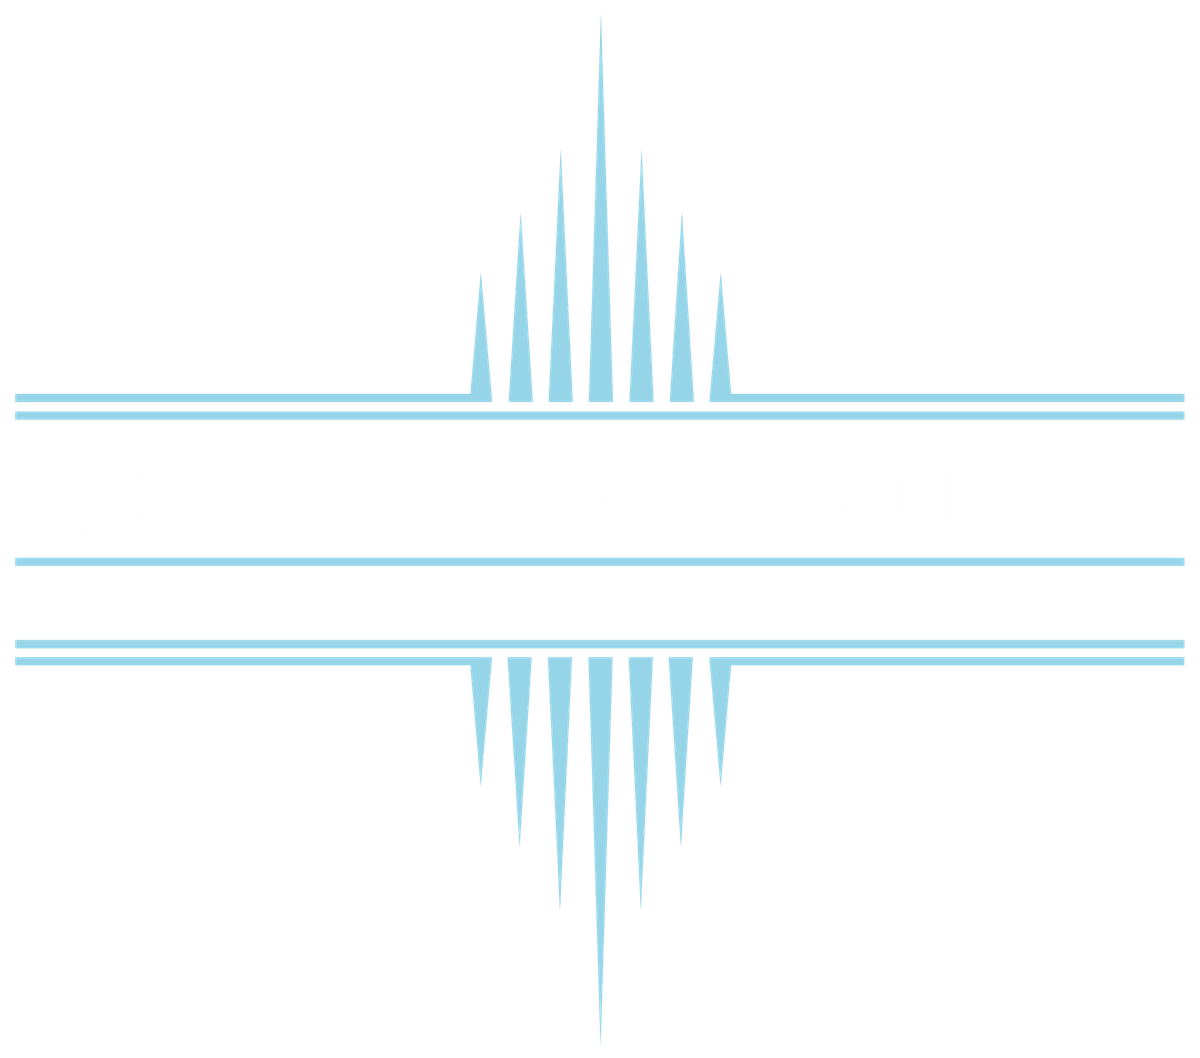 Greystone Capital Management - Birmingham, AL